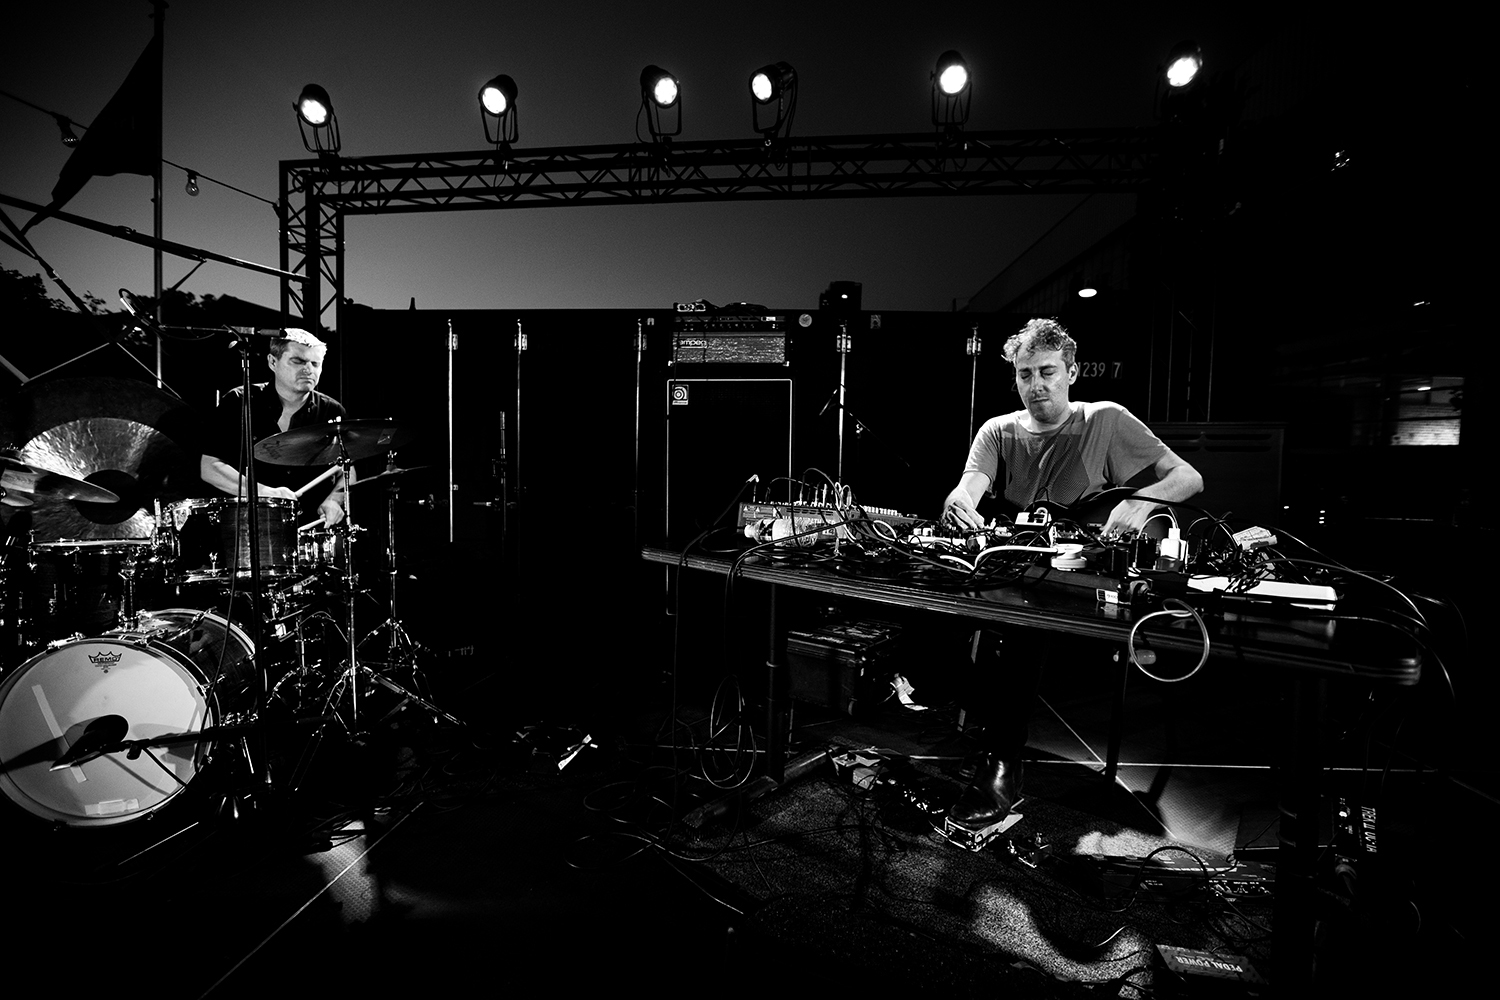 Oren Ambarchi & Will Guthrie by Laurent Orseau - Kanal - Centre Pompidou with Les Ateliers Claus - Brussels, Belgium #2